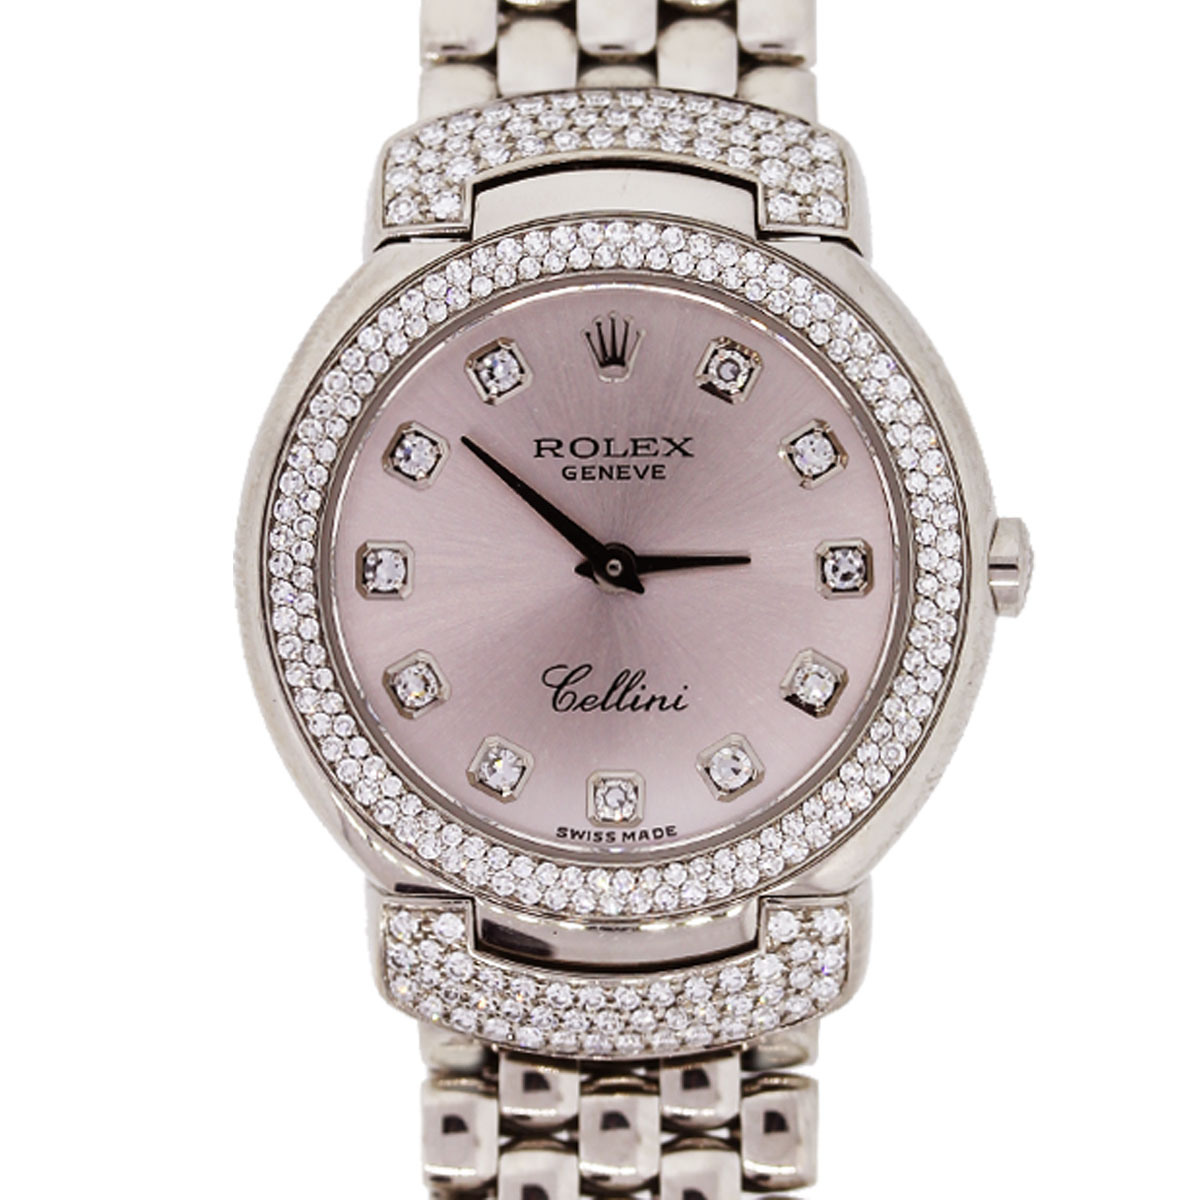 Rolex Cellini 6673 White Gold Pink Diamond Dial Diamond